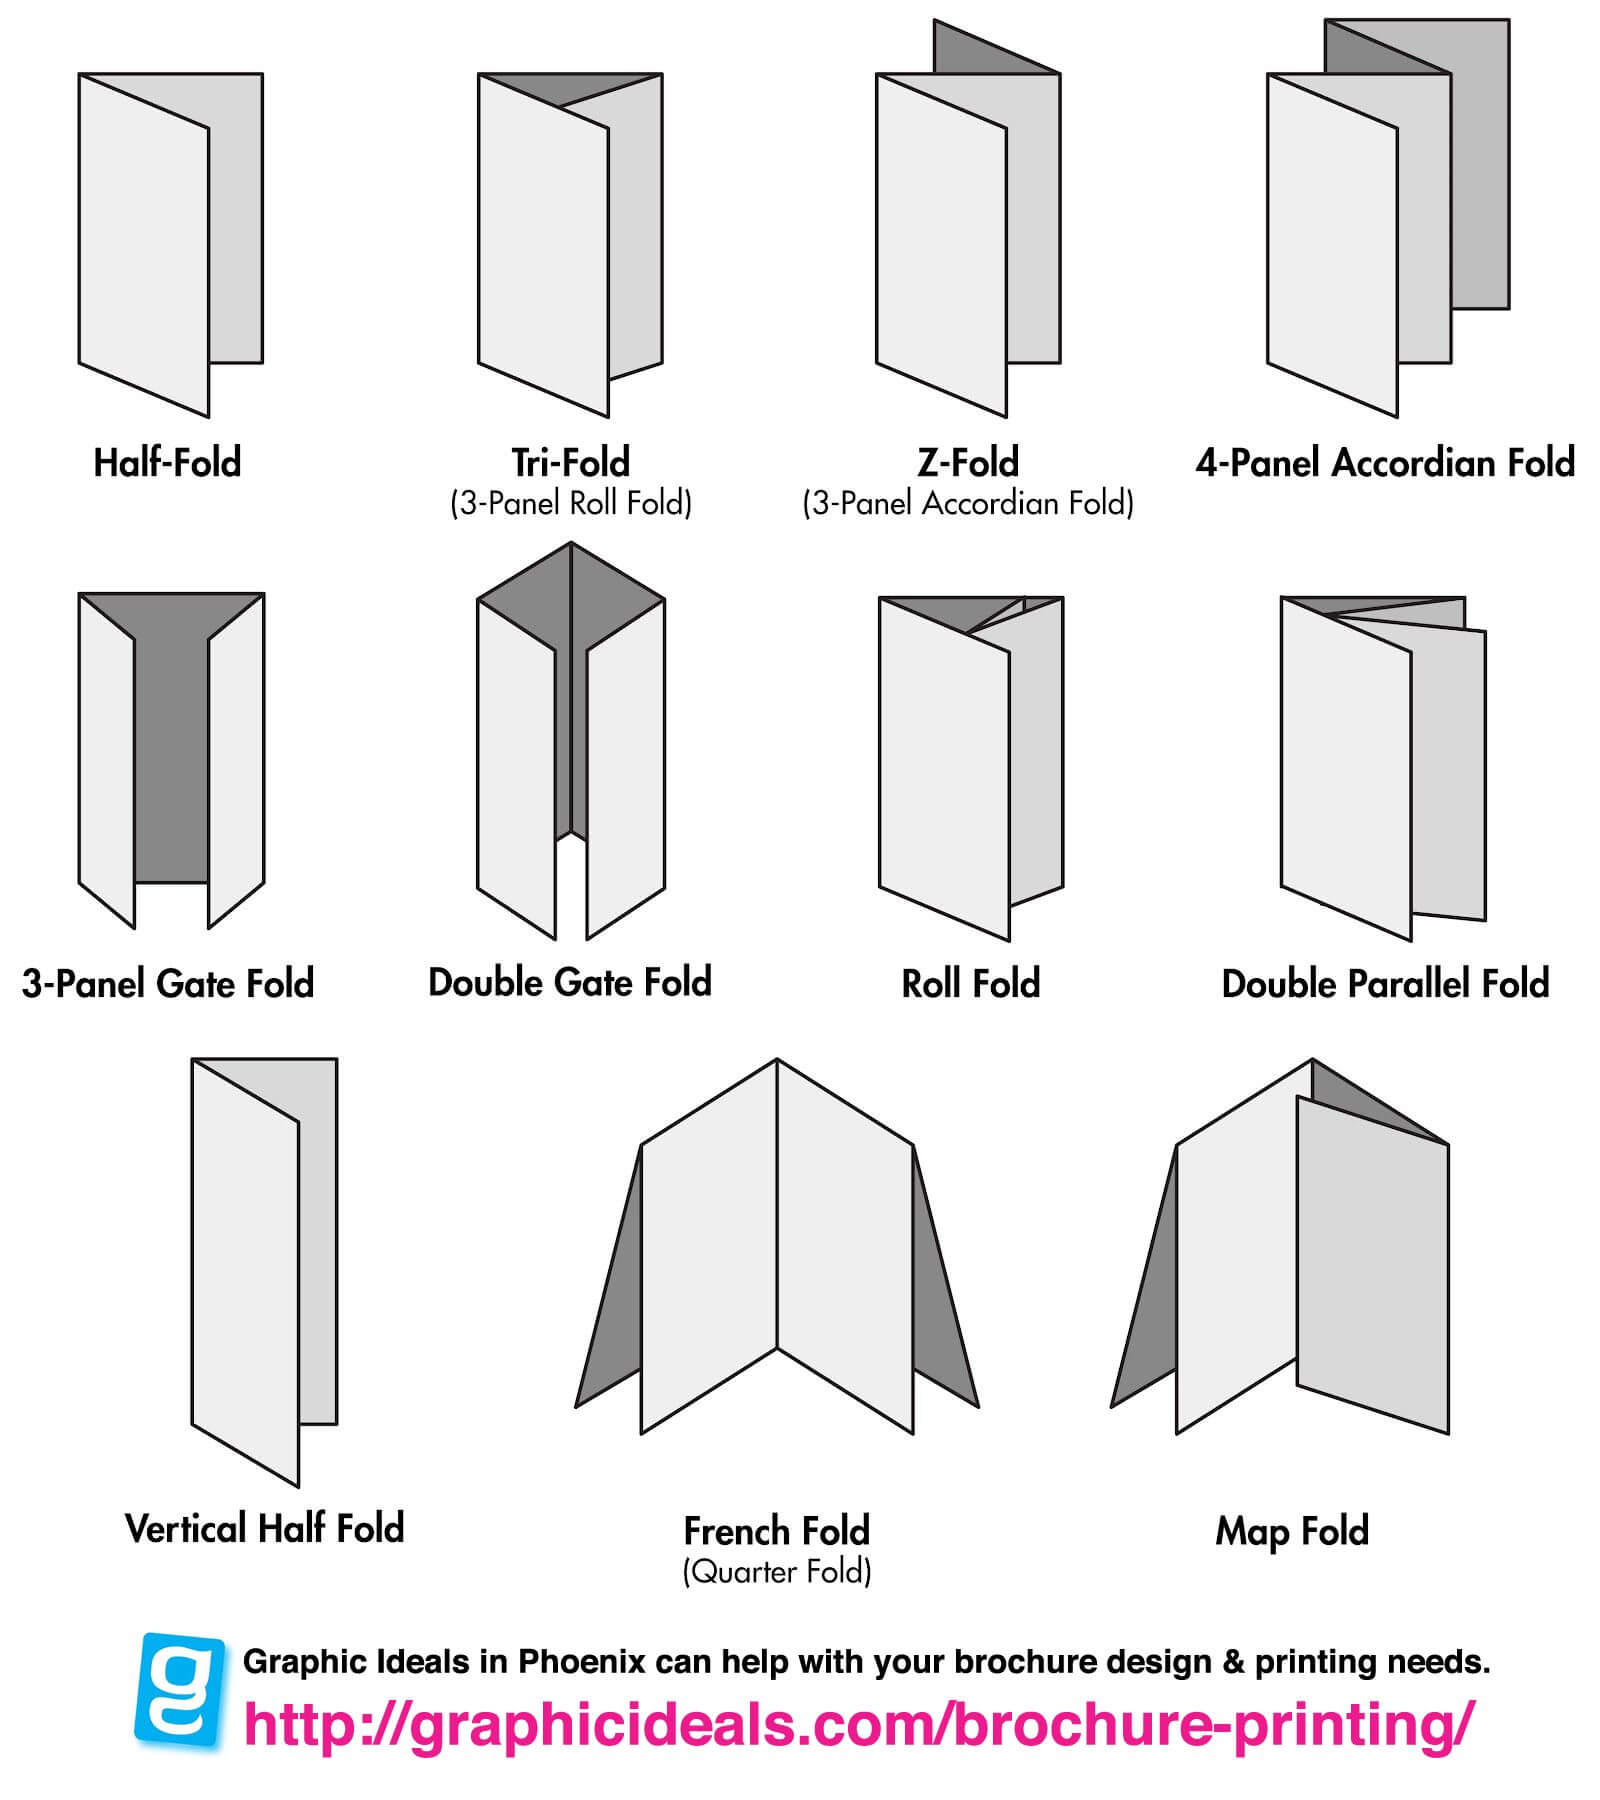 Finishing Print Services: Brochure Folds Diagram From intended for Brochure Folding Templates